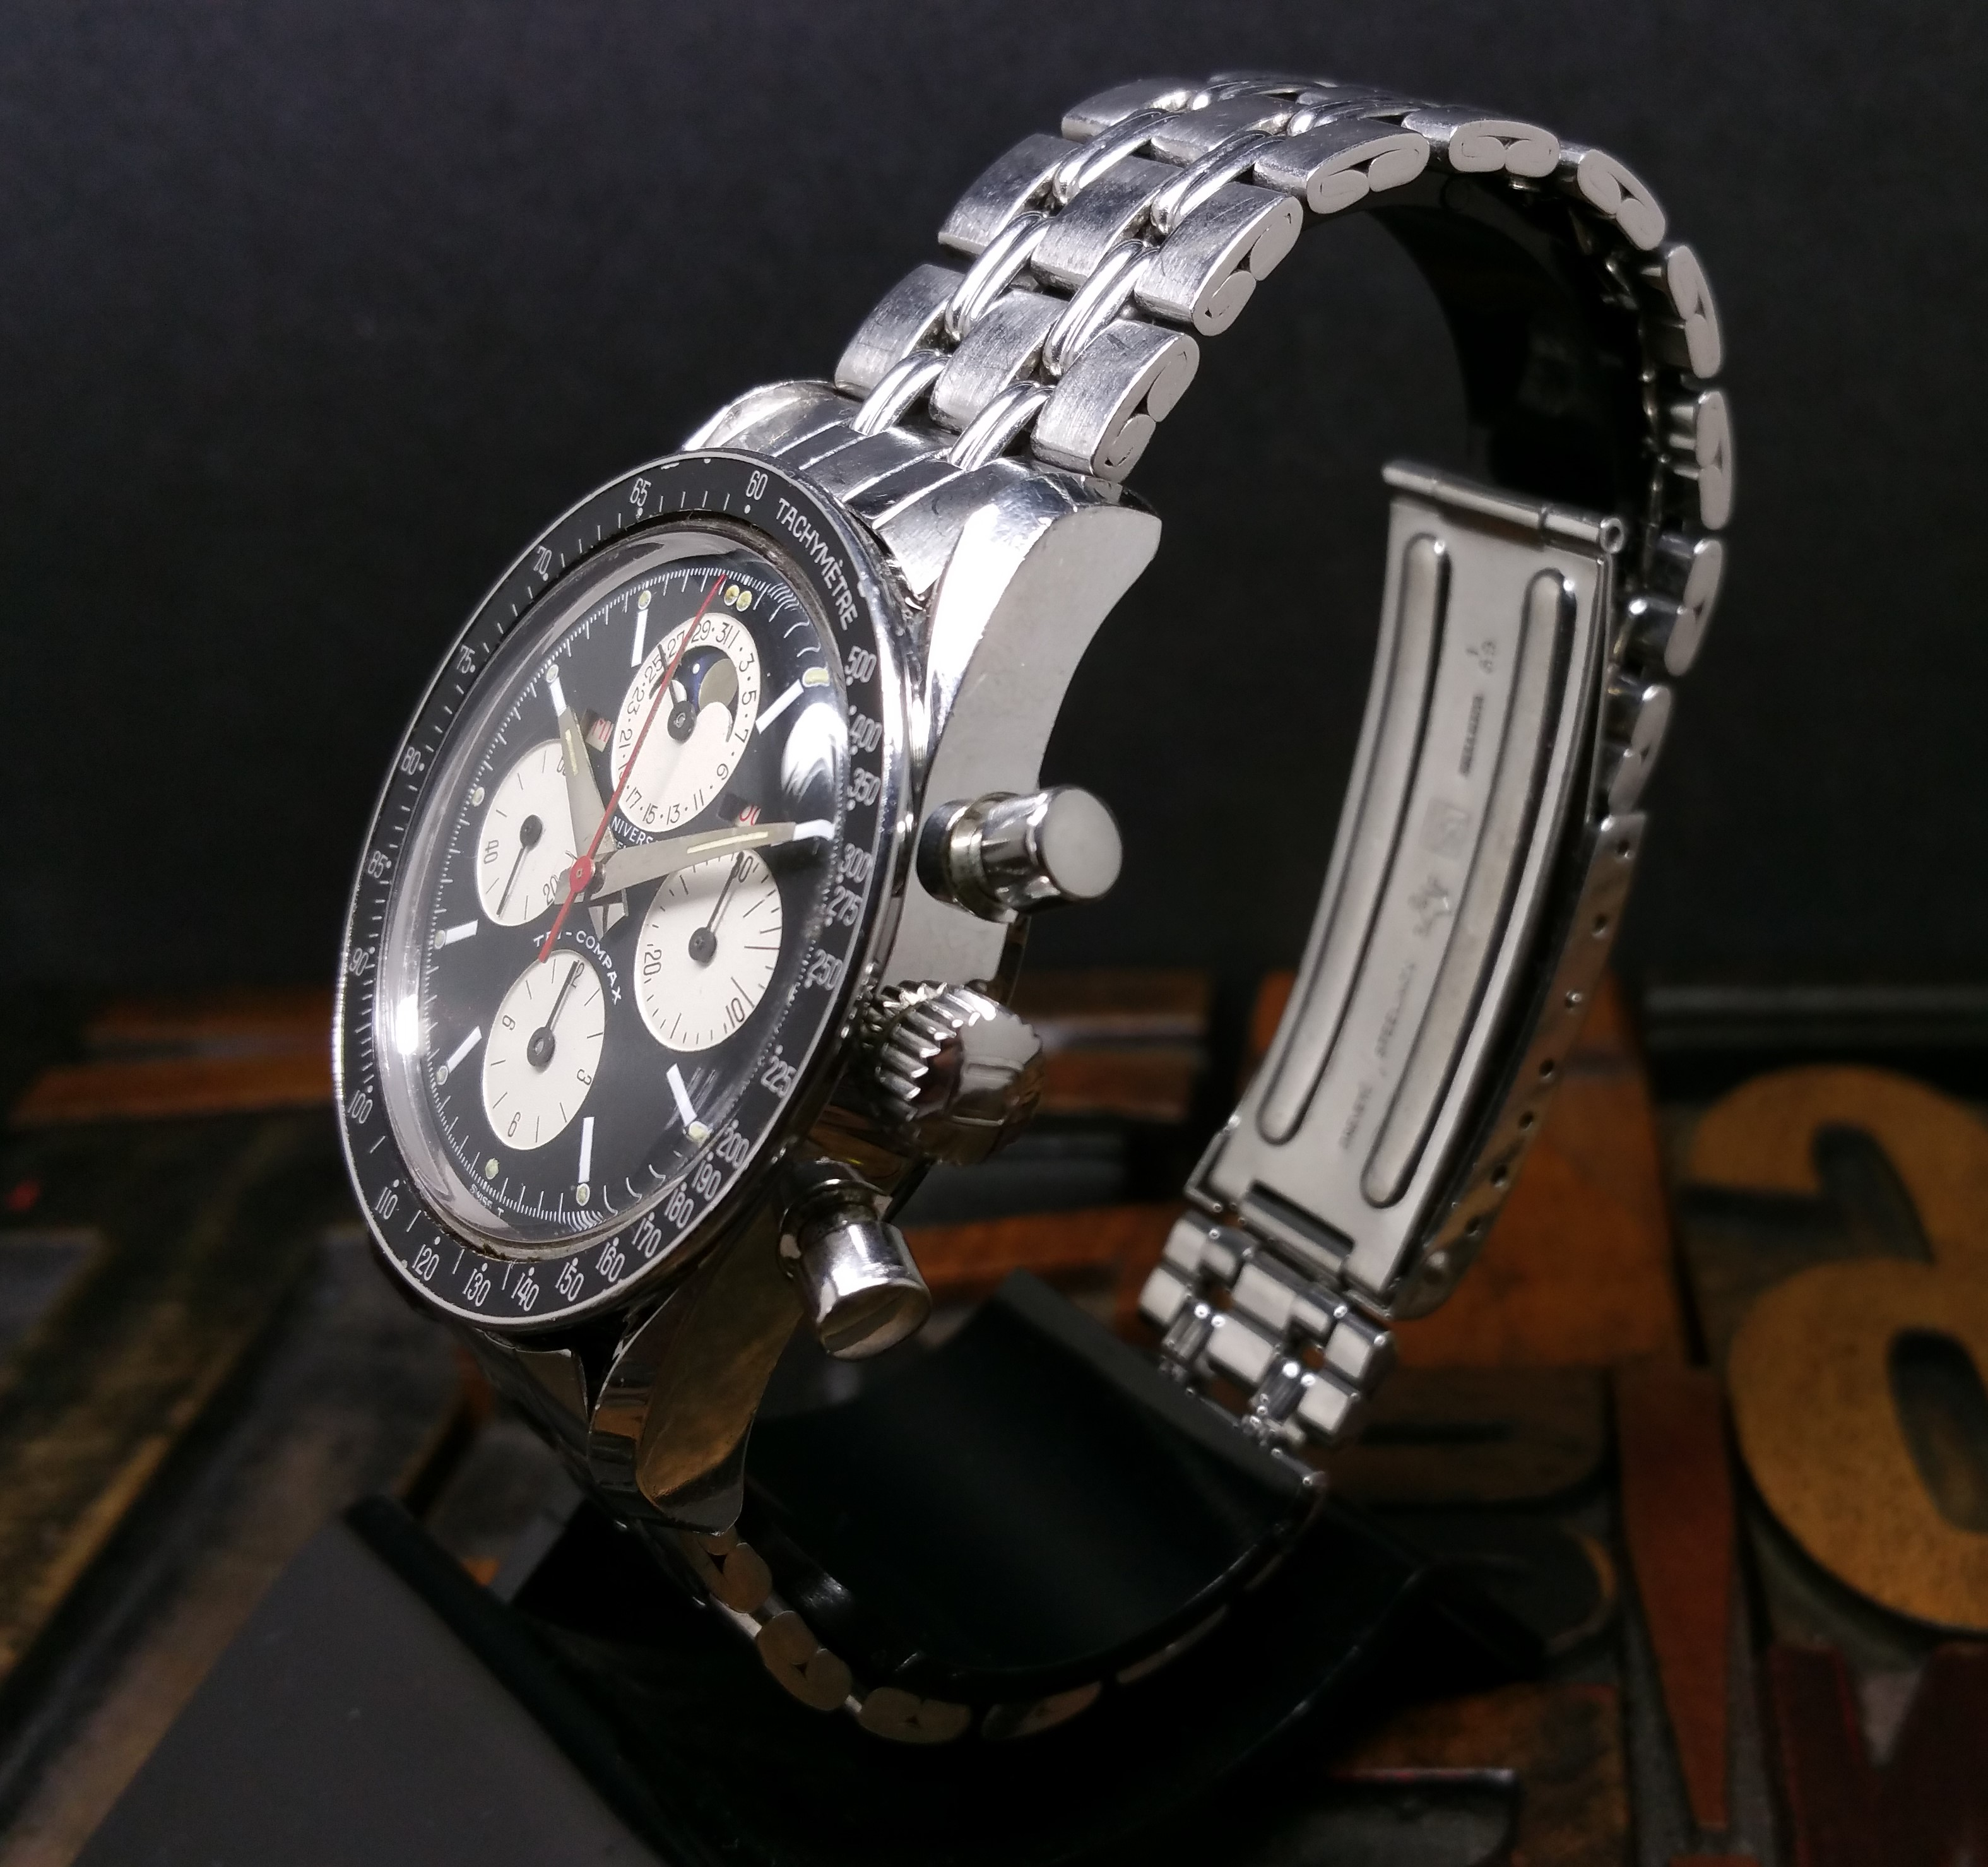 1969 Universal Genève Tri Compax 881101/02 'Evil Clapton' Dial with Box and Papers